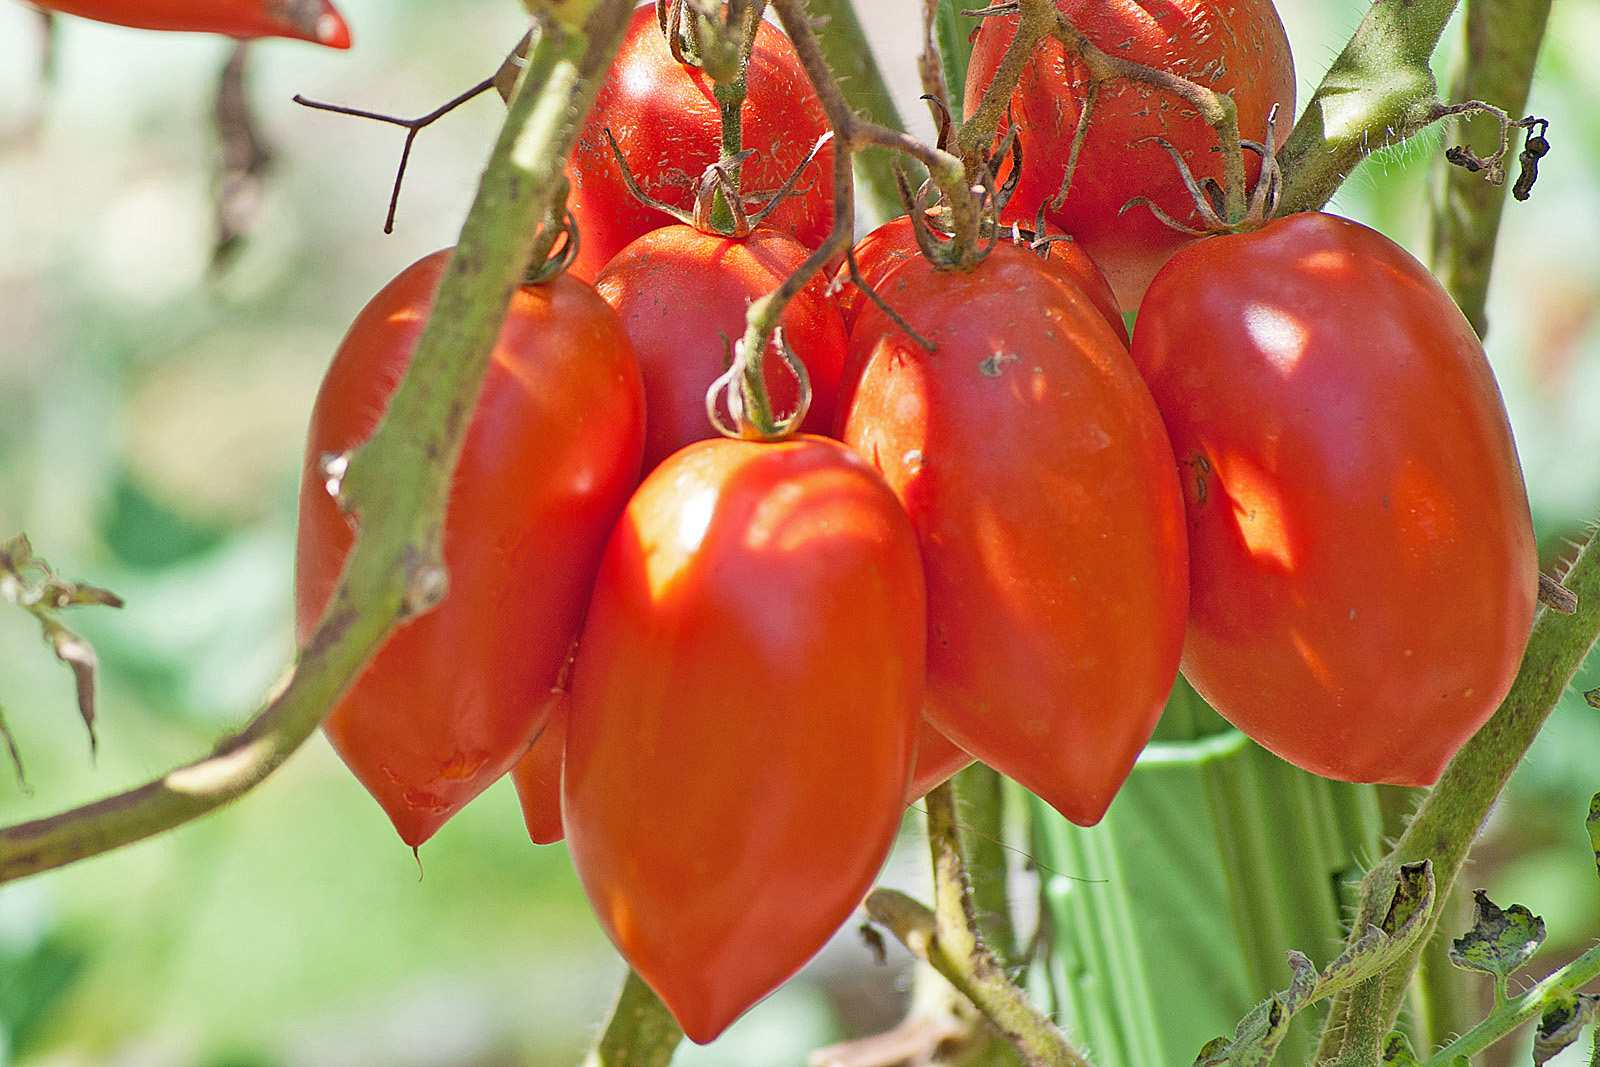 A close-up of Opalka tomatoes